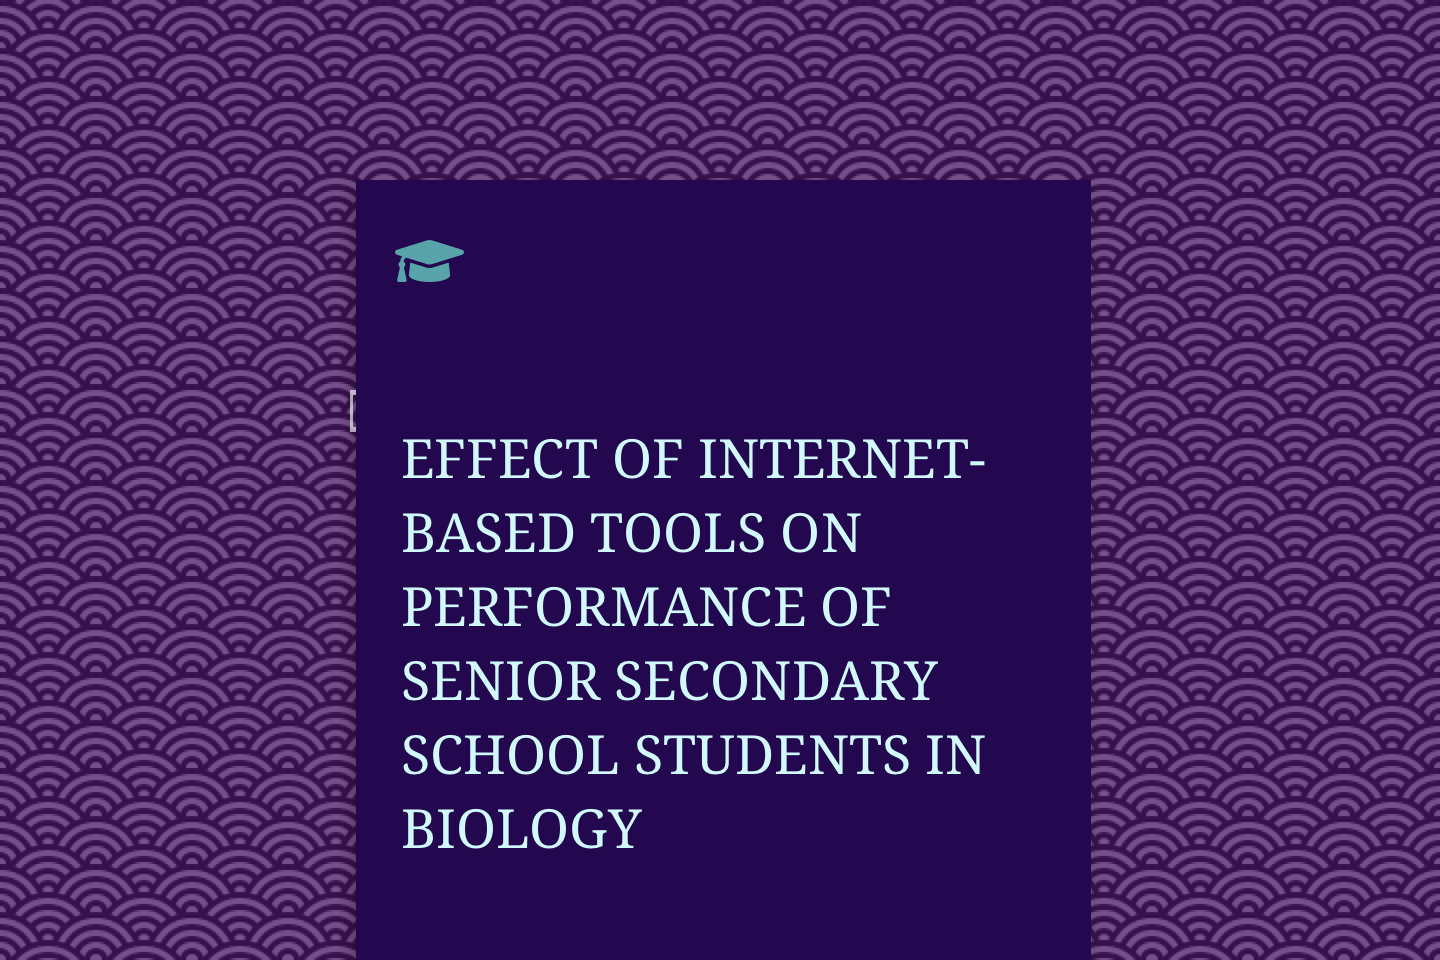 EFFECT OF INTERNET-BASED TOOLS ON PERFORMANCE OF SENIOR SECONDARY SCHOOL STUDENTS IN BIOLOGY